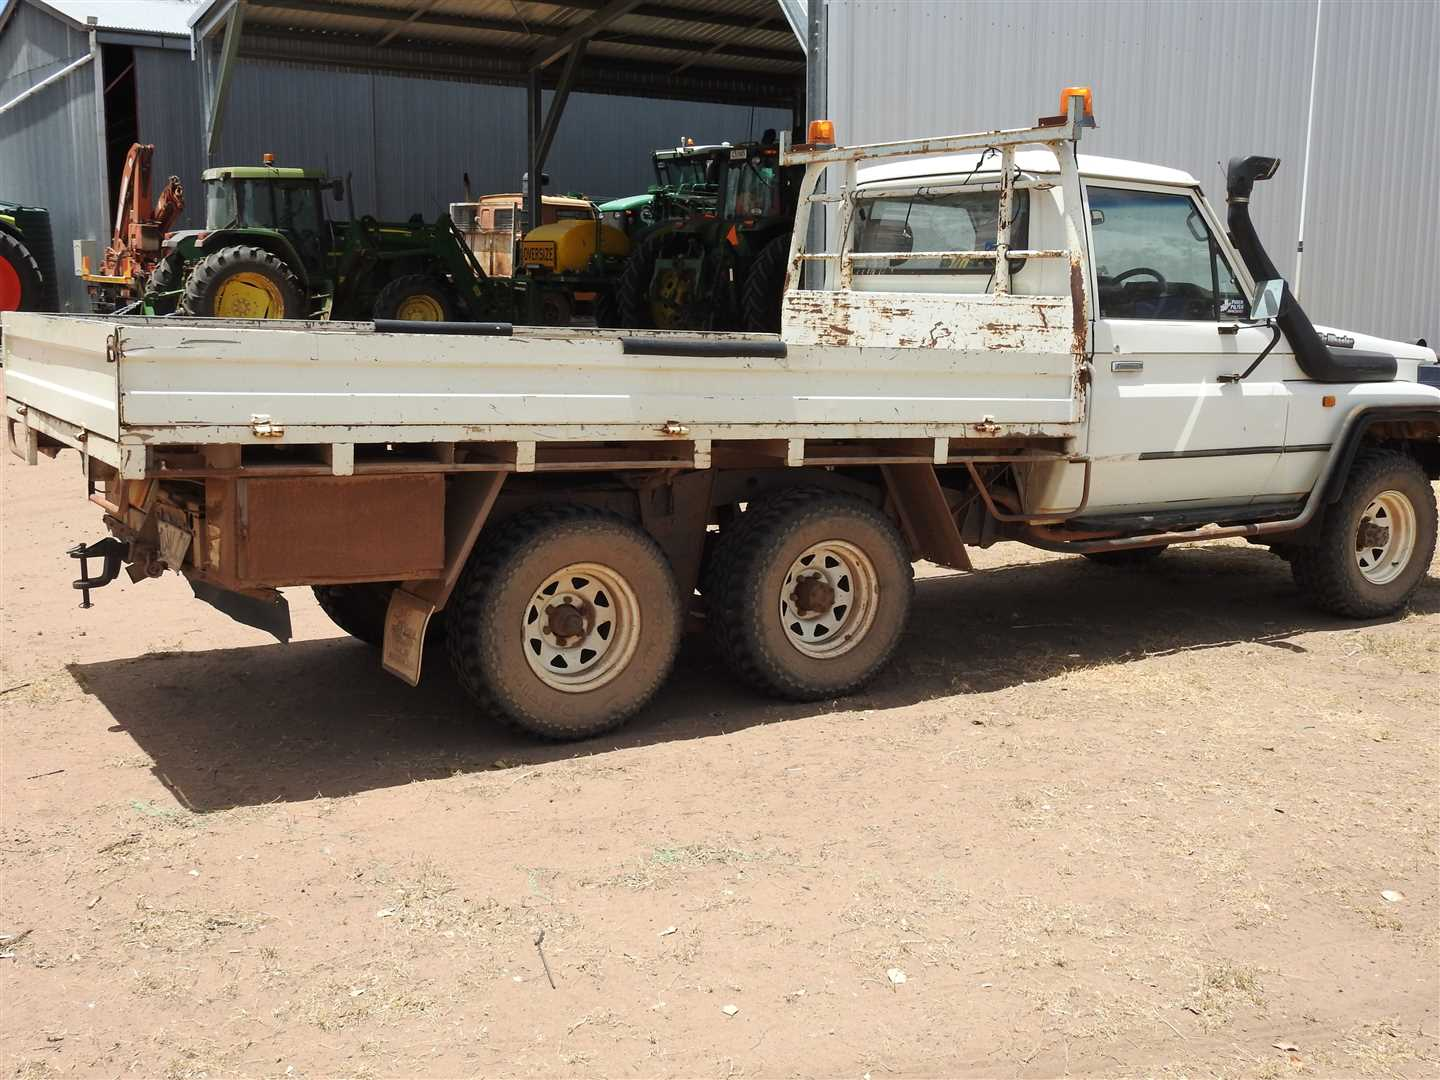 Outside vendor:  1993 Toyota 6 wheeler vin JT731PJ750856527, un registered Used as spray vehicle  with Croplands sprayer, next photo